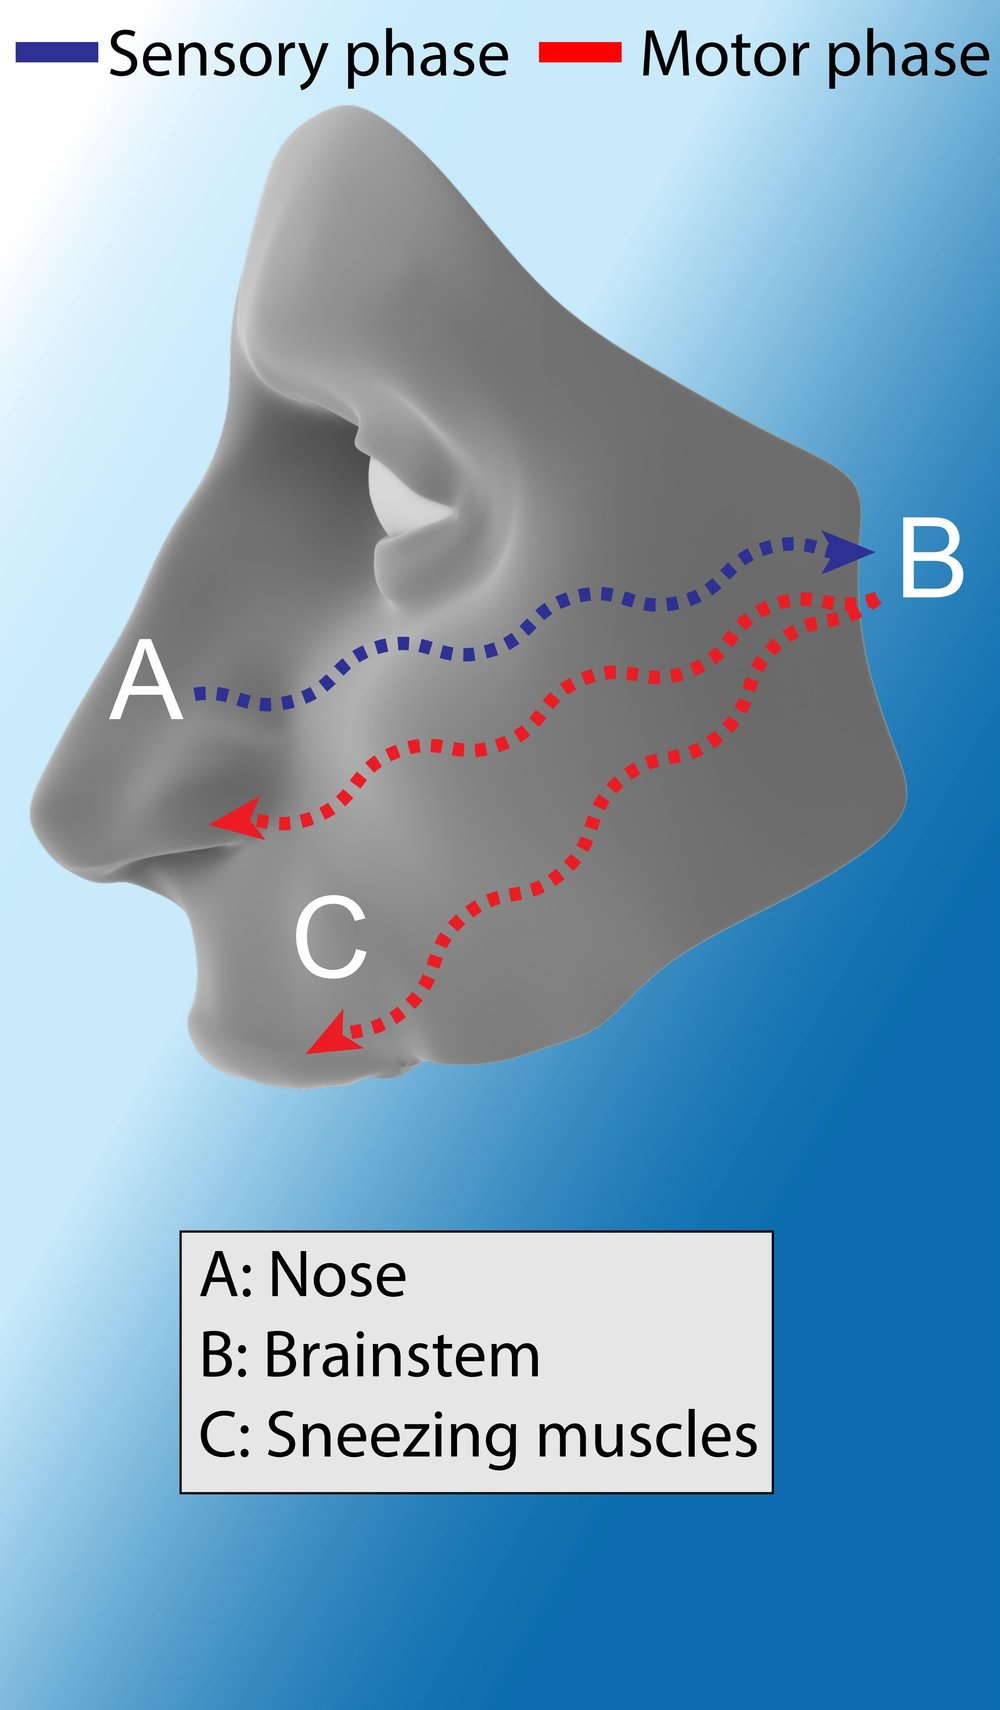 "Normal sneezing : The trigeminal nerve senses irritation in the nose (A) and relays this information to the brainstem (B), which activates sneezing muscles (C) in the face, throat, and chest. Image Credit: Alex Sercel with the ""face"" image licensed under  CC BY-NC-SA 4.0 ."